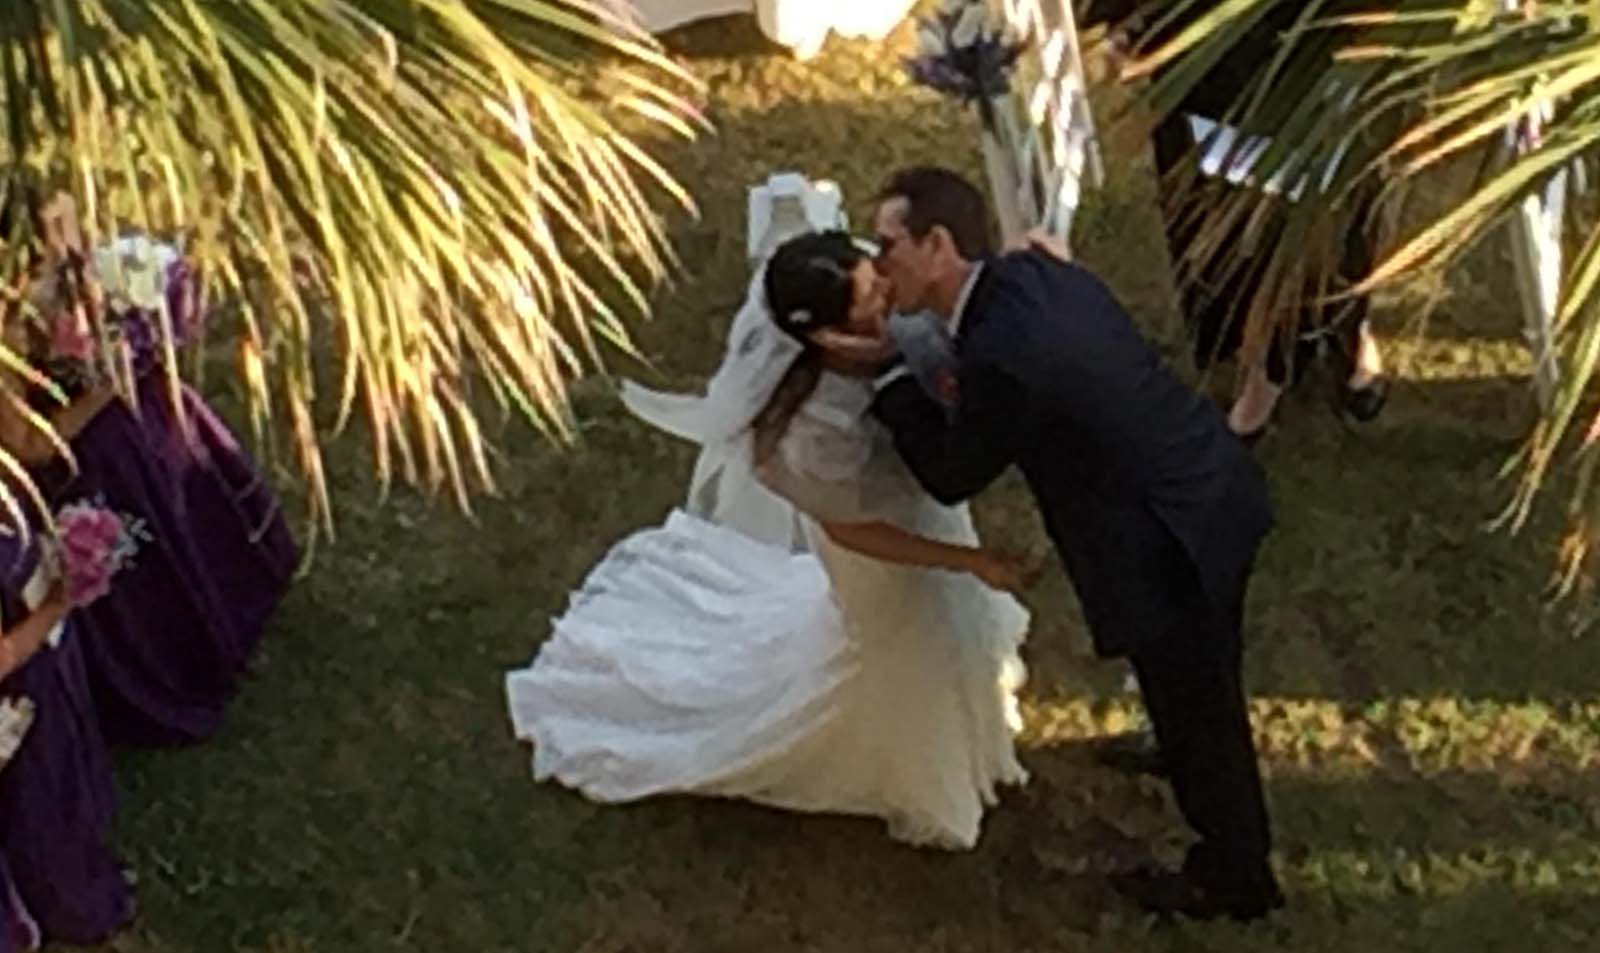 Couple getting married on lawn